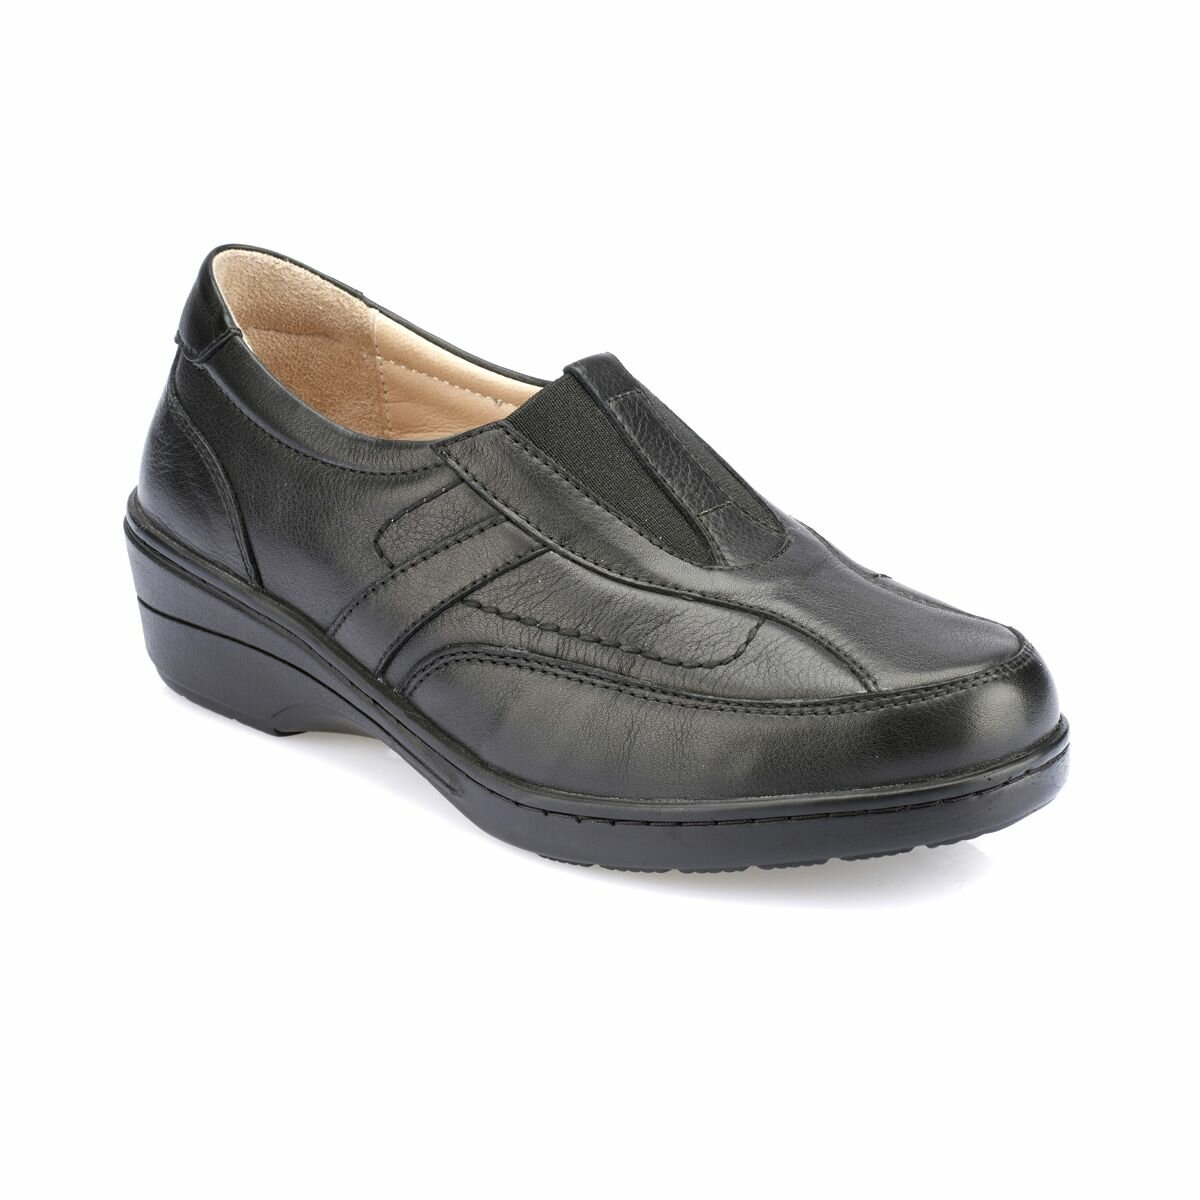 FLO 82. 100154.Z Black Women Shoes Polaris 5 Point